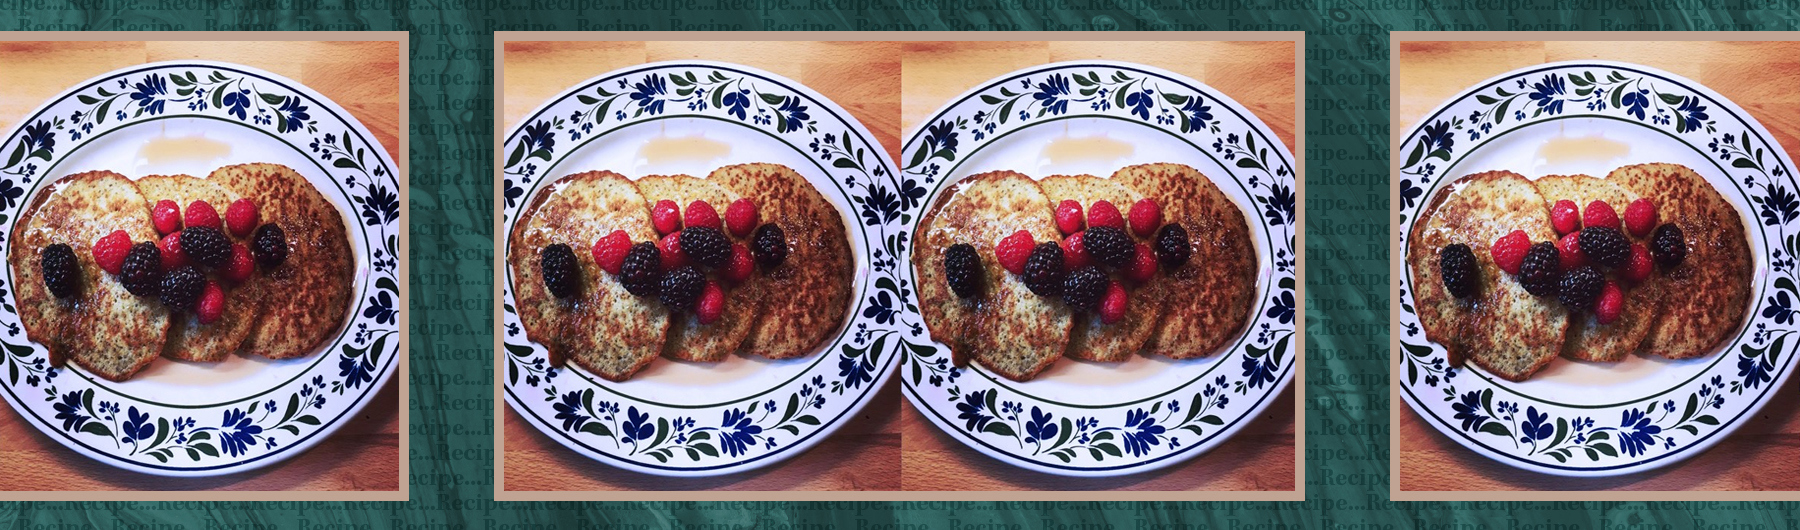 Banana-chia pancakes with berries and maple syrup